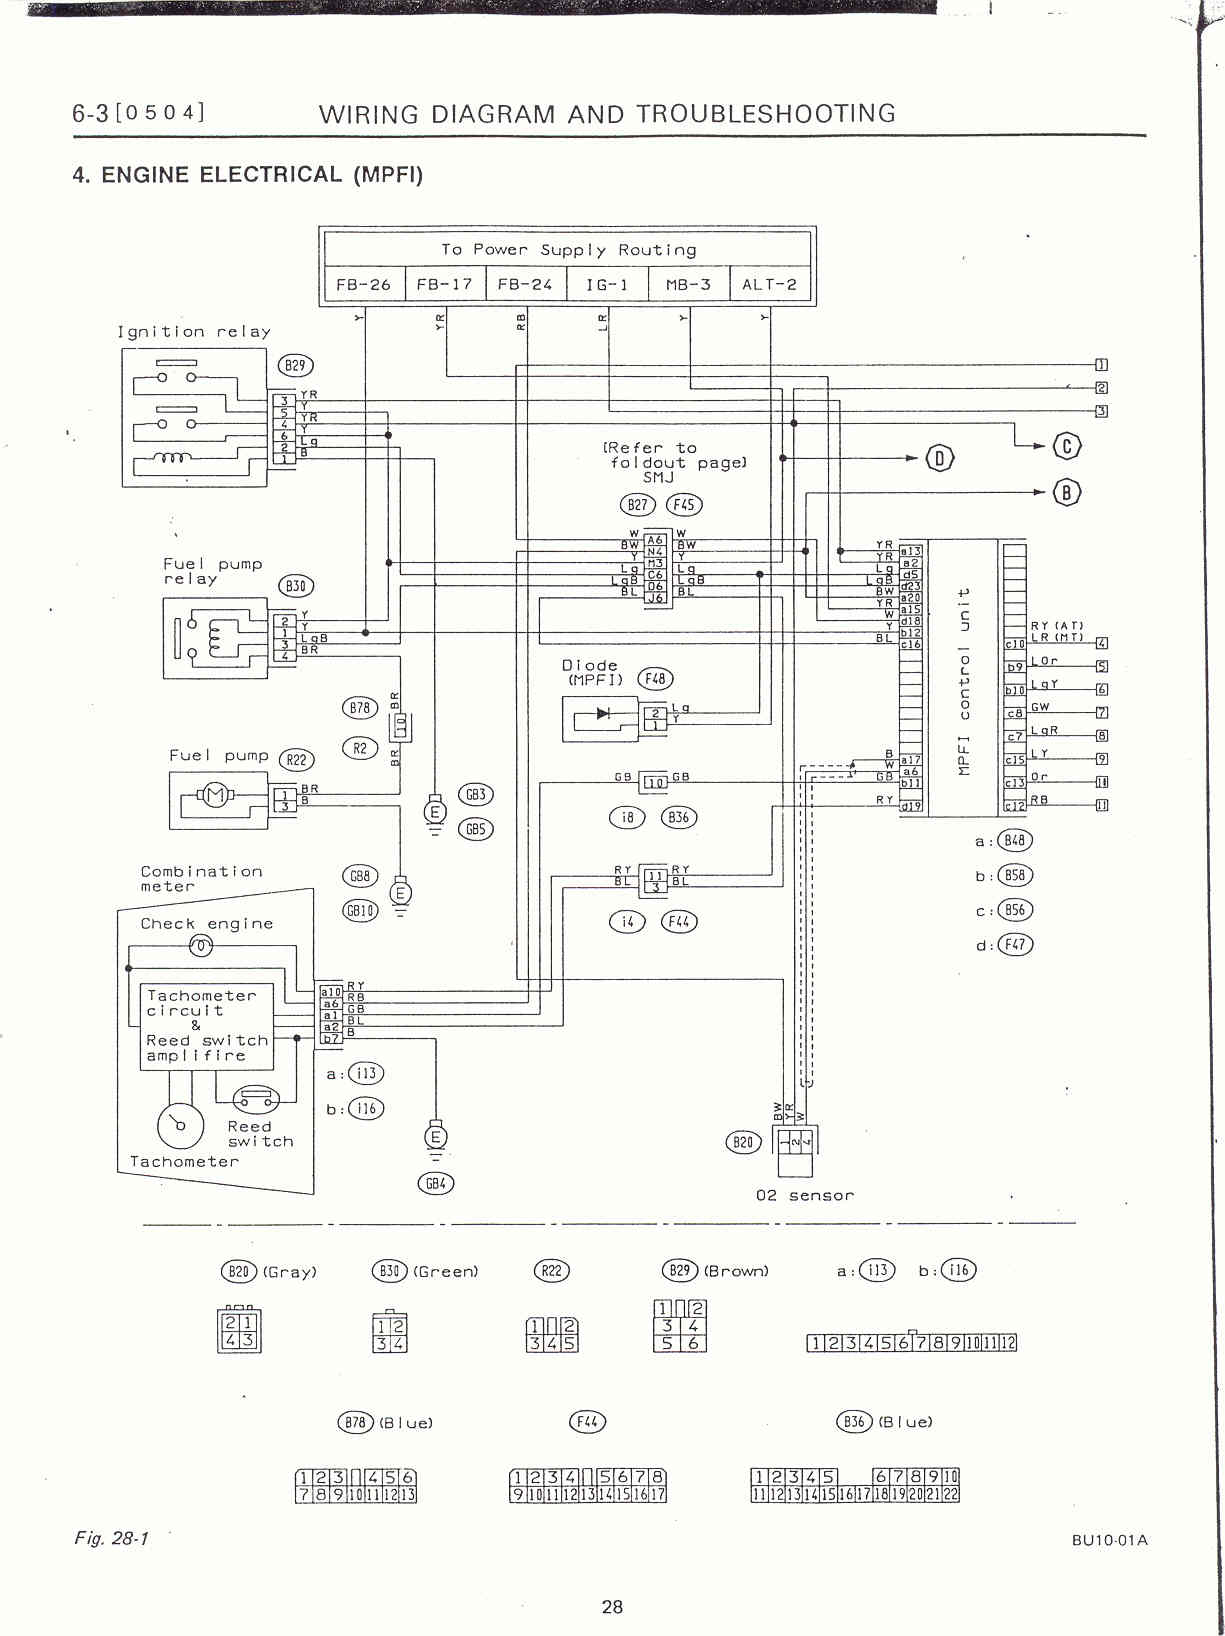 engine electrical page 1